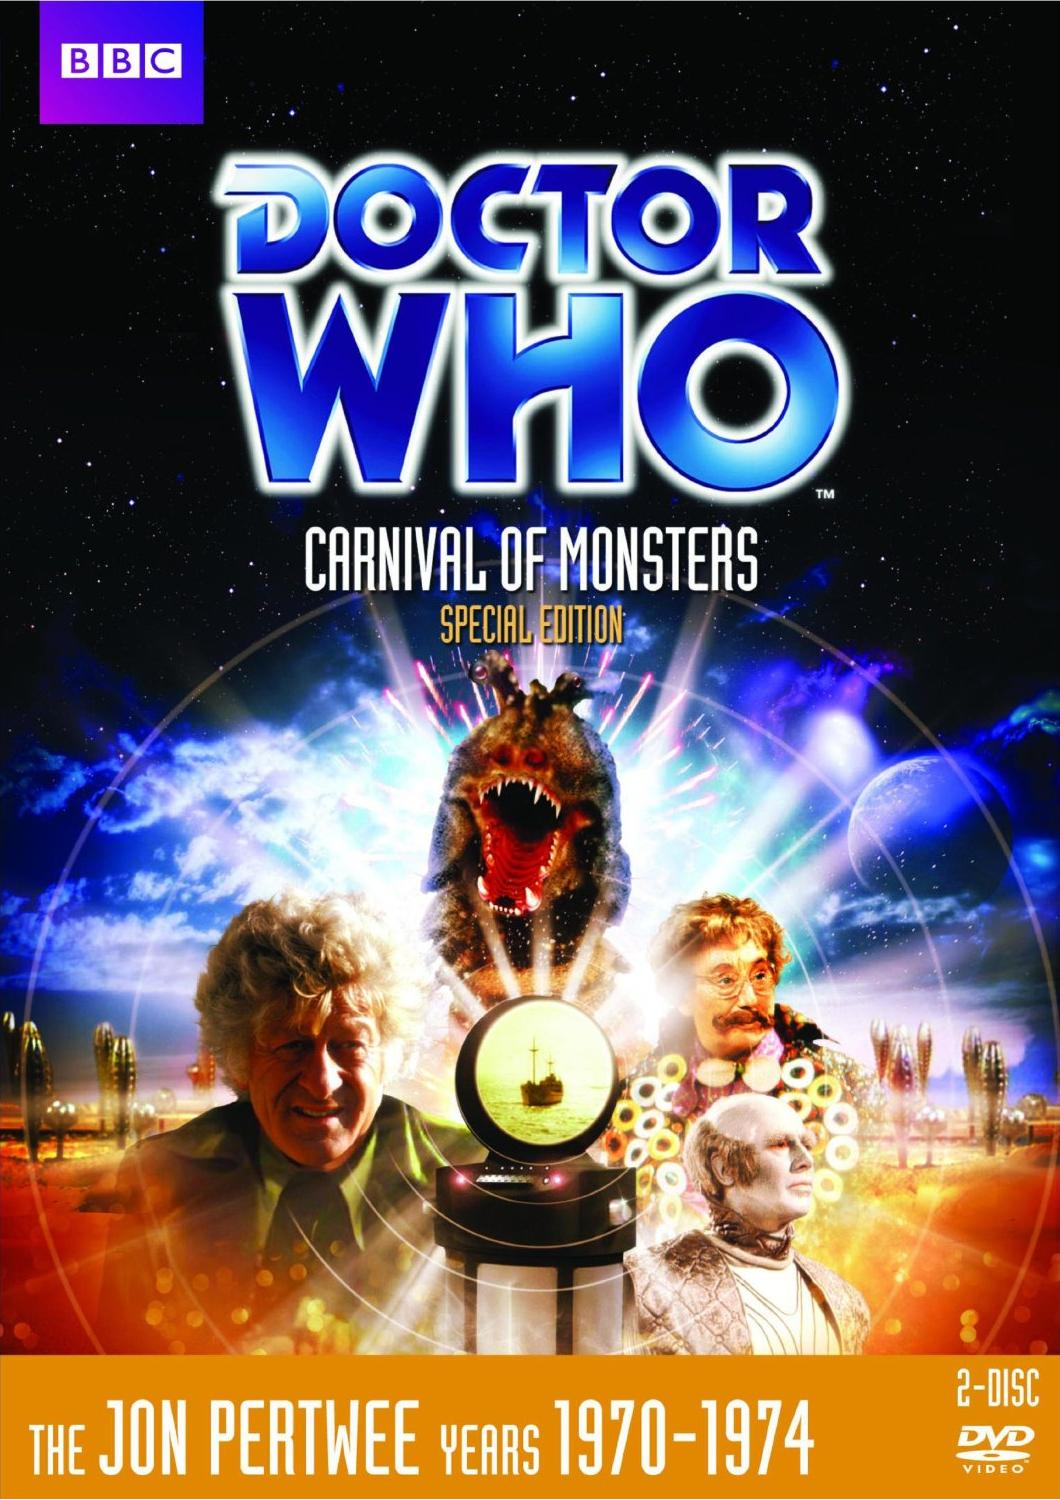 Carnival of monsters special edition us dvd